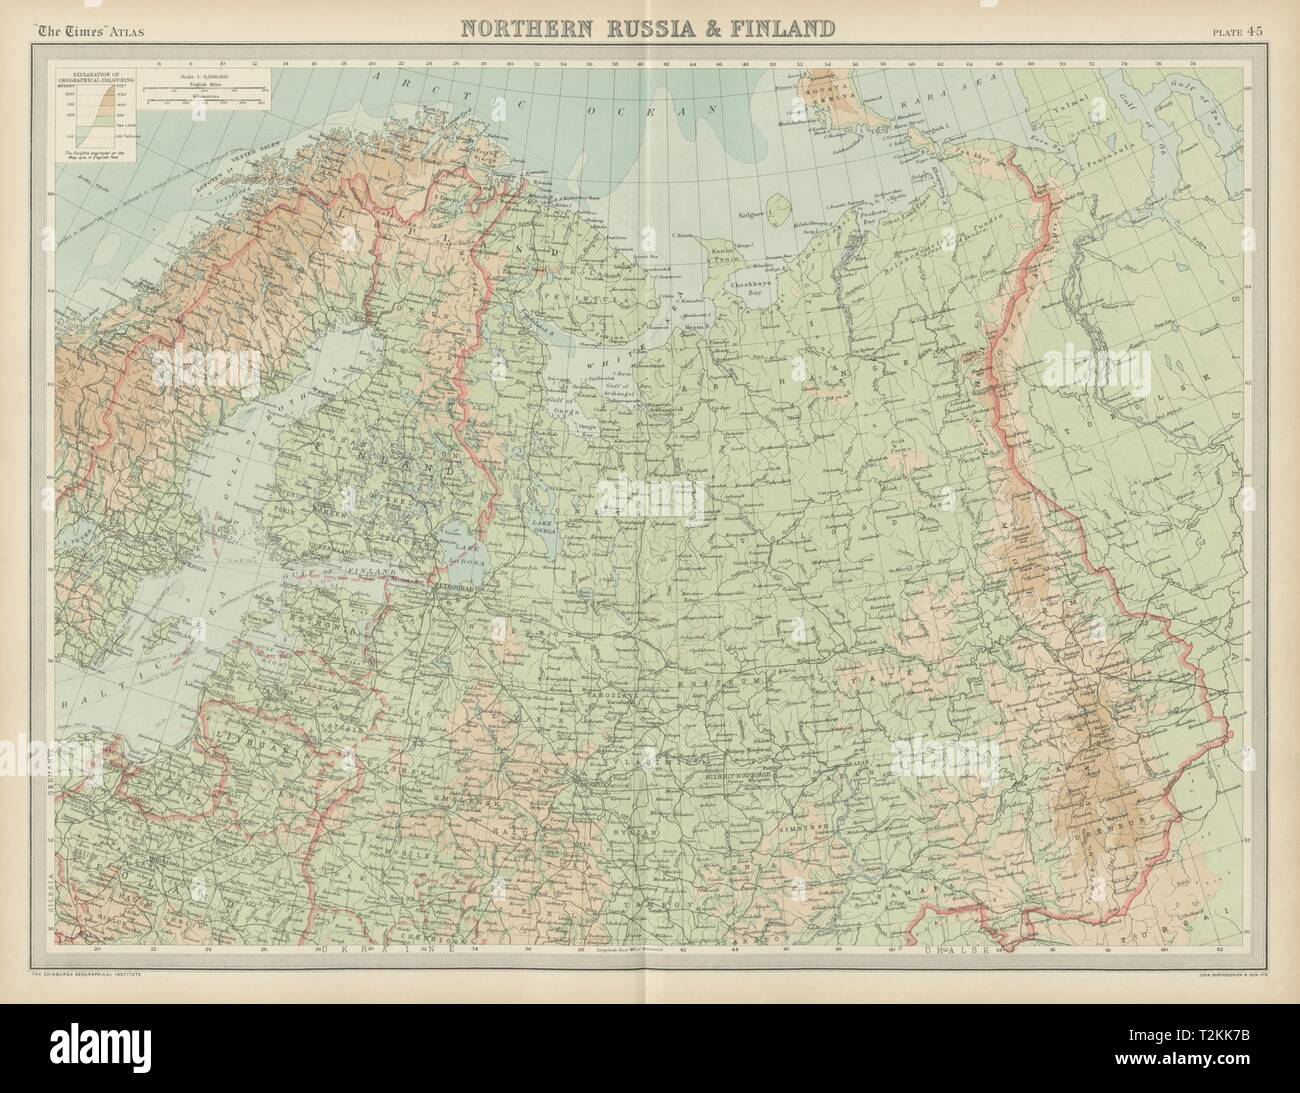 Northern Russia & Finland. Baltic States. Unresolved borders. THE TIMES 1922 map Stock Photo